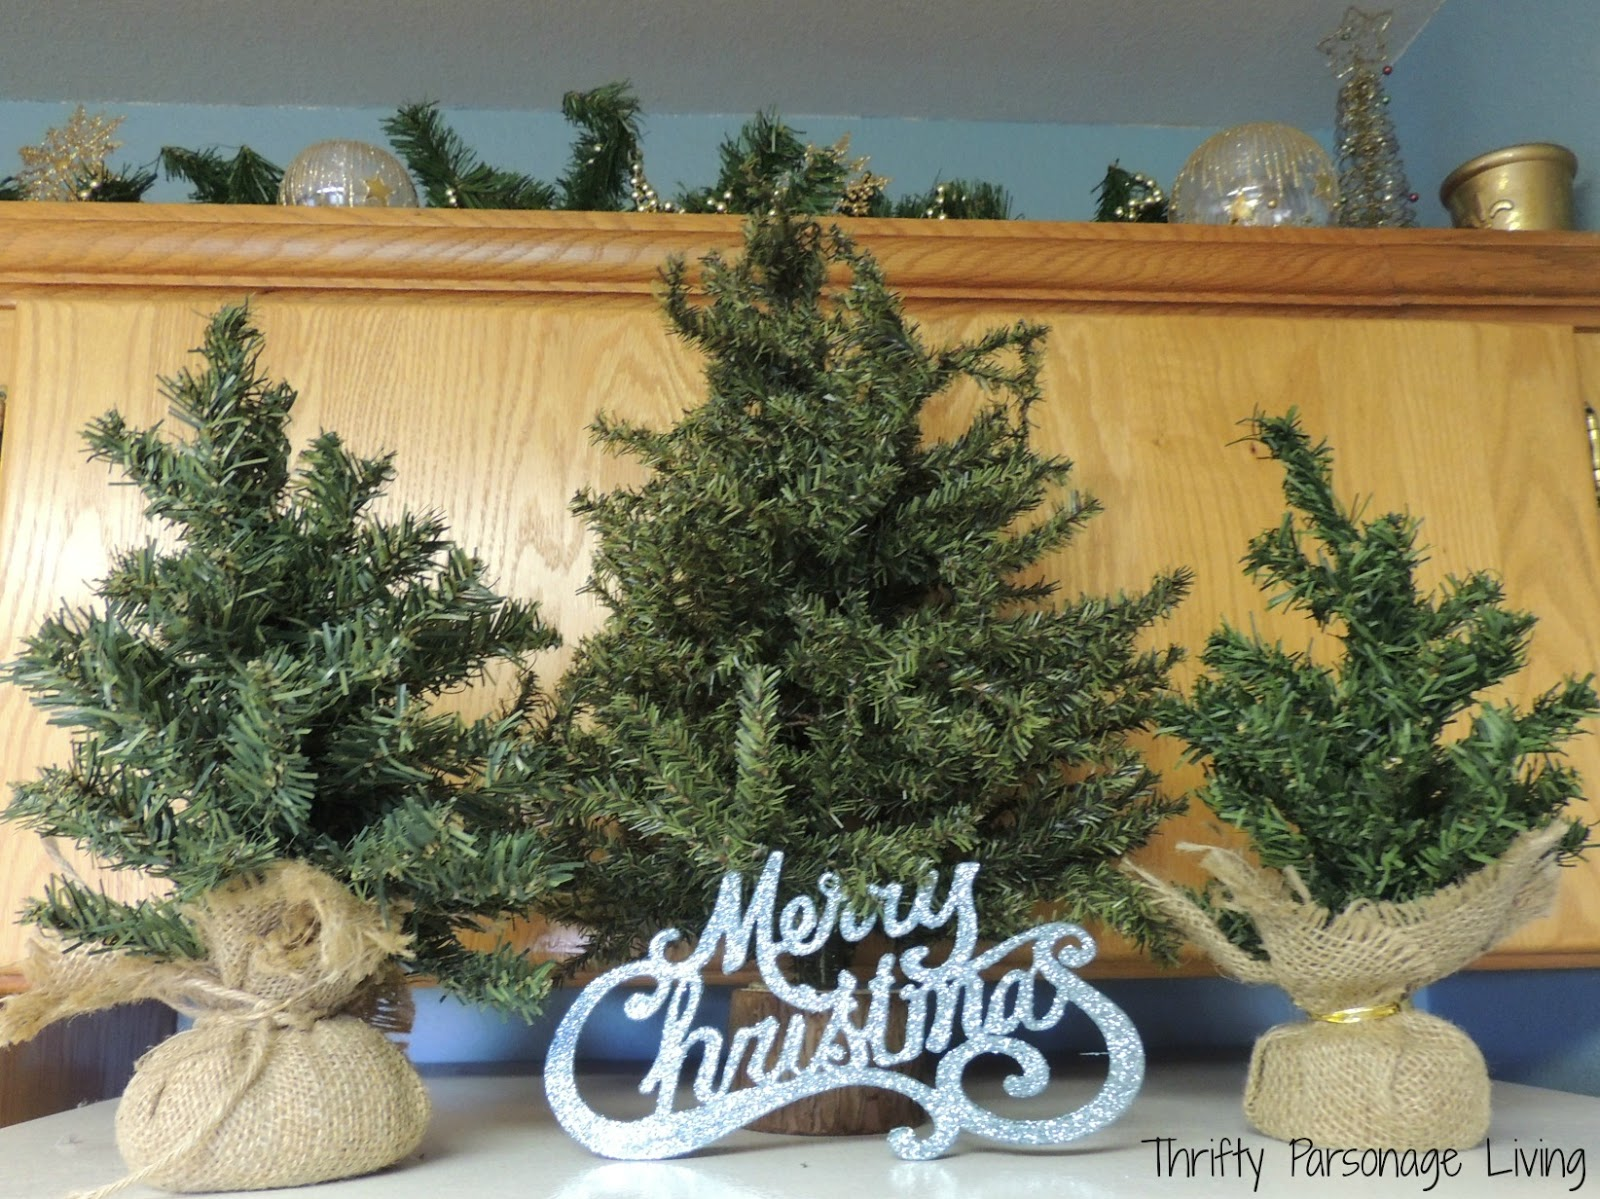 Thrifty Parsonage Living: HOLIDAY HOME TOUR